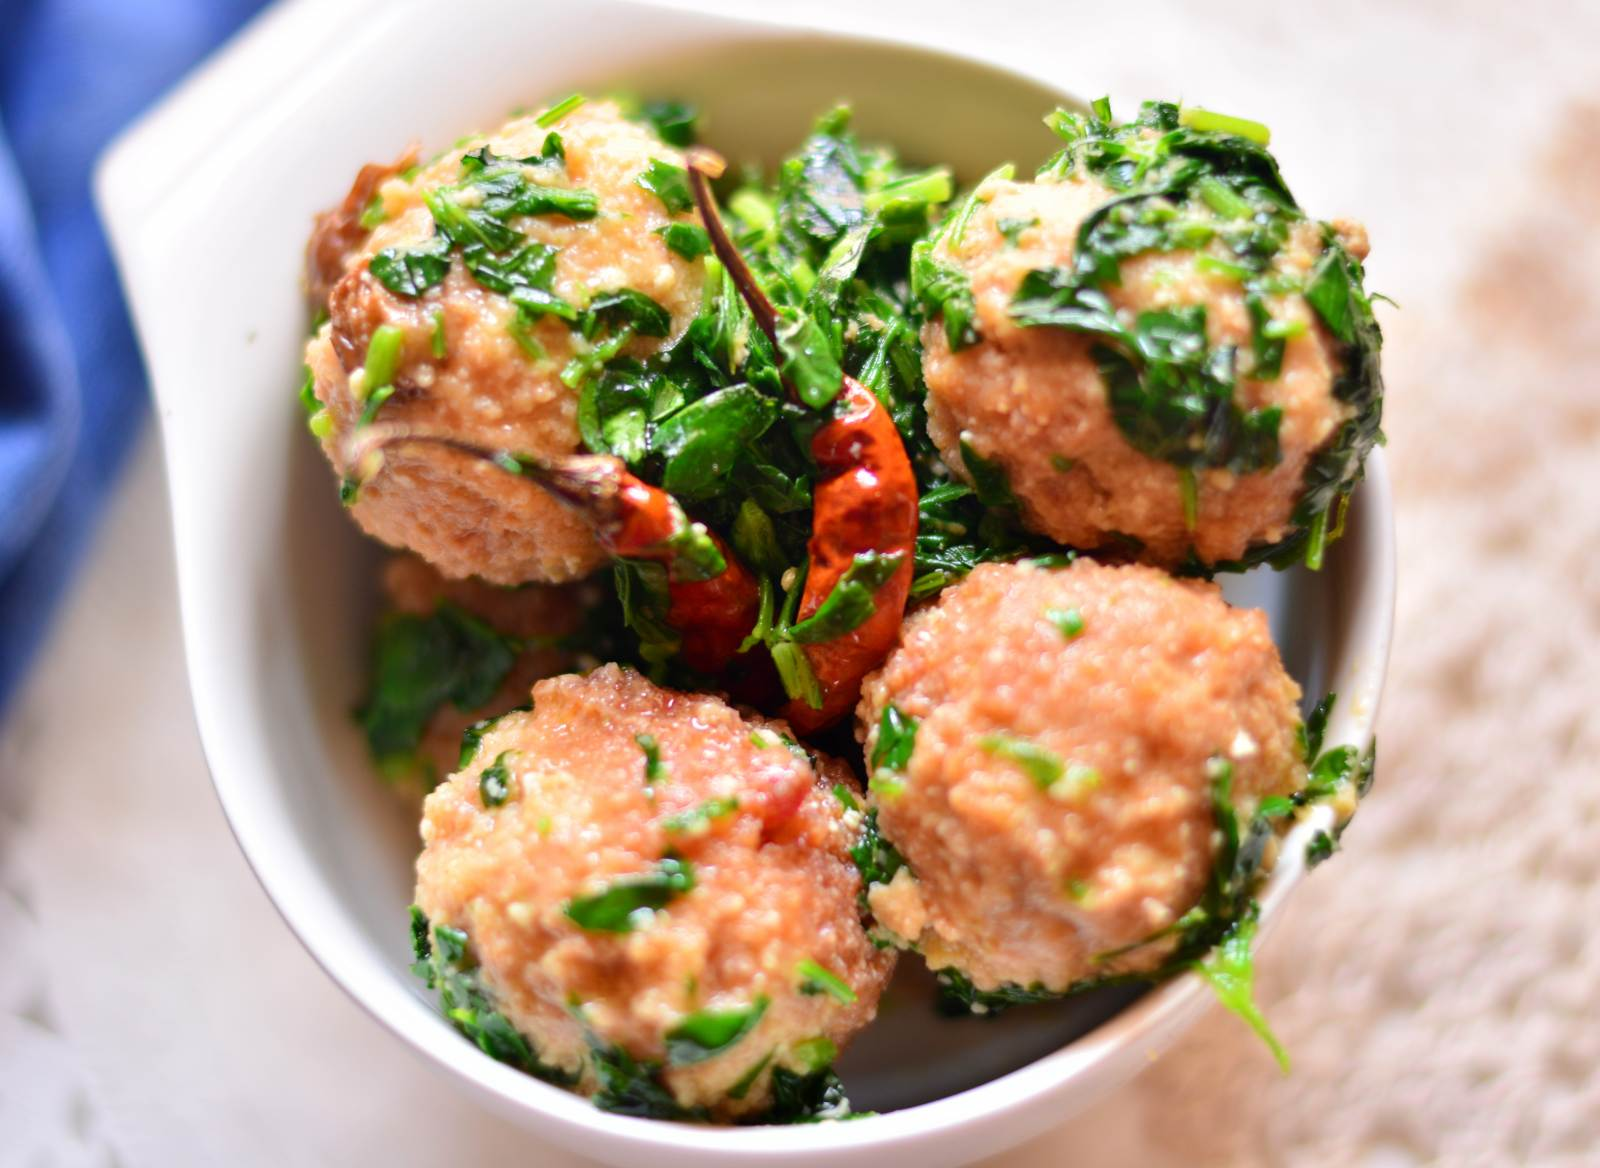 Kashmiri Methi T Golemach Recipe-Minced Chicken Balls With Fenugreek Leaves